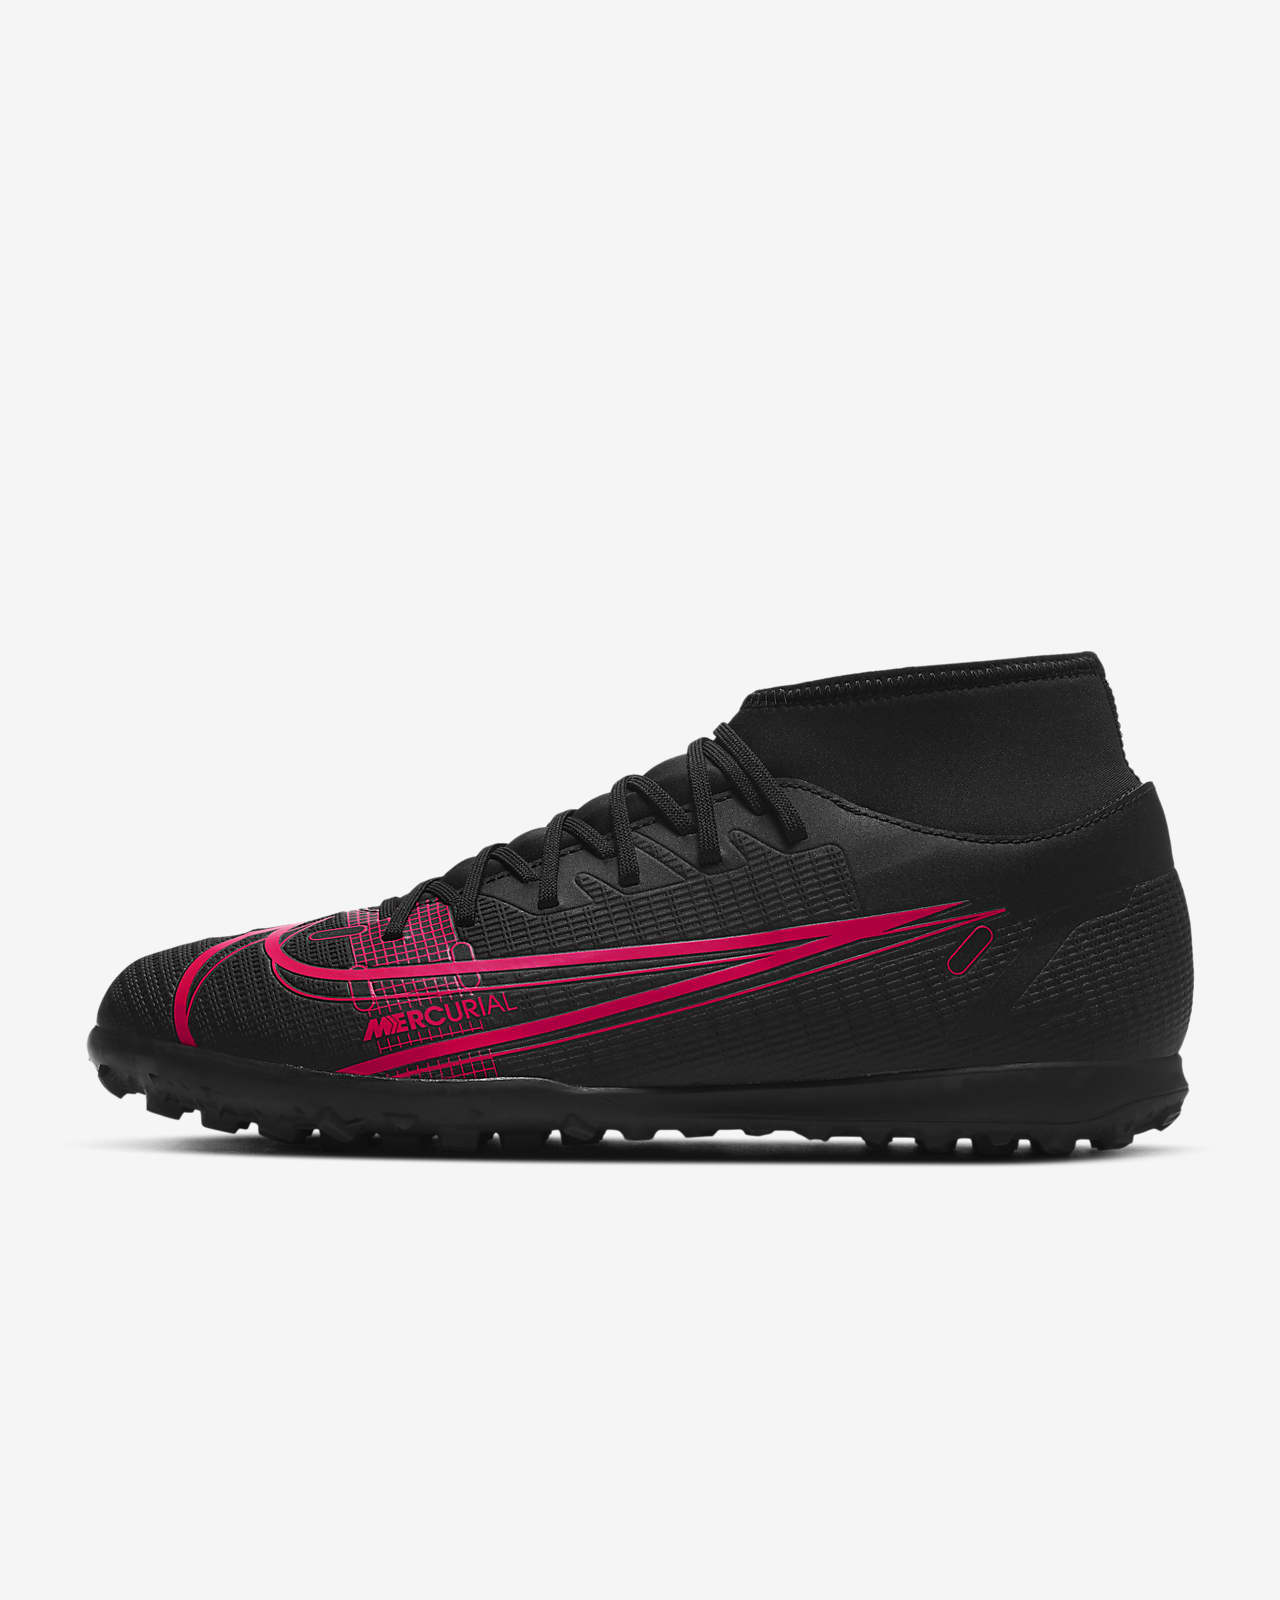 Nike Mercurial Superfly 8 Club TF Artificial-Turf Football Shoe